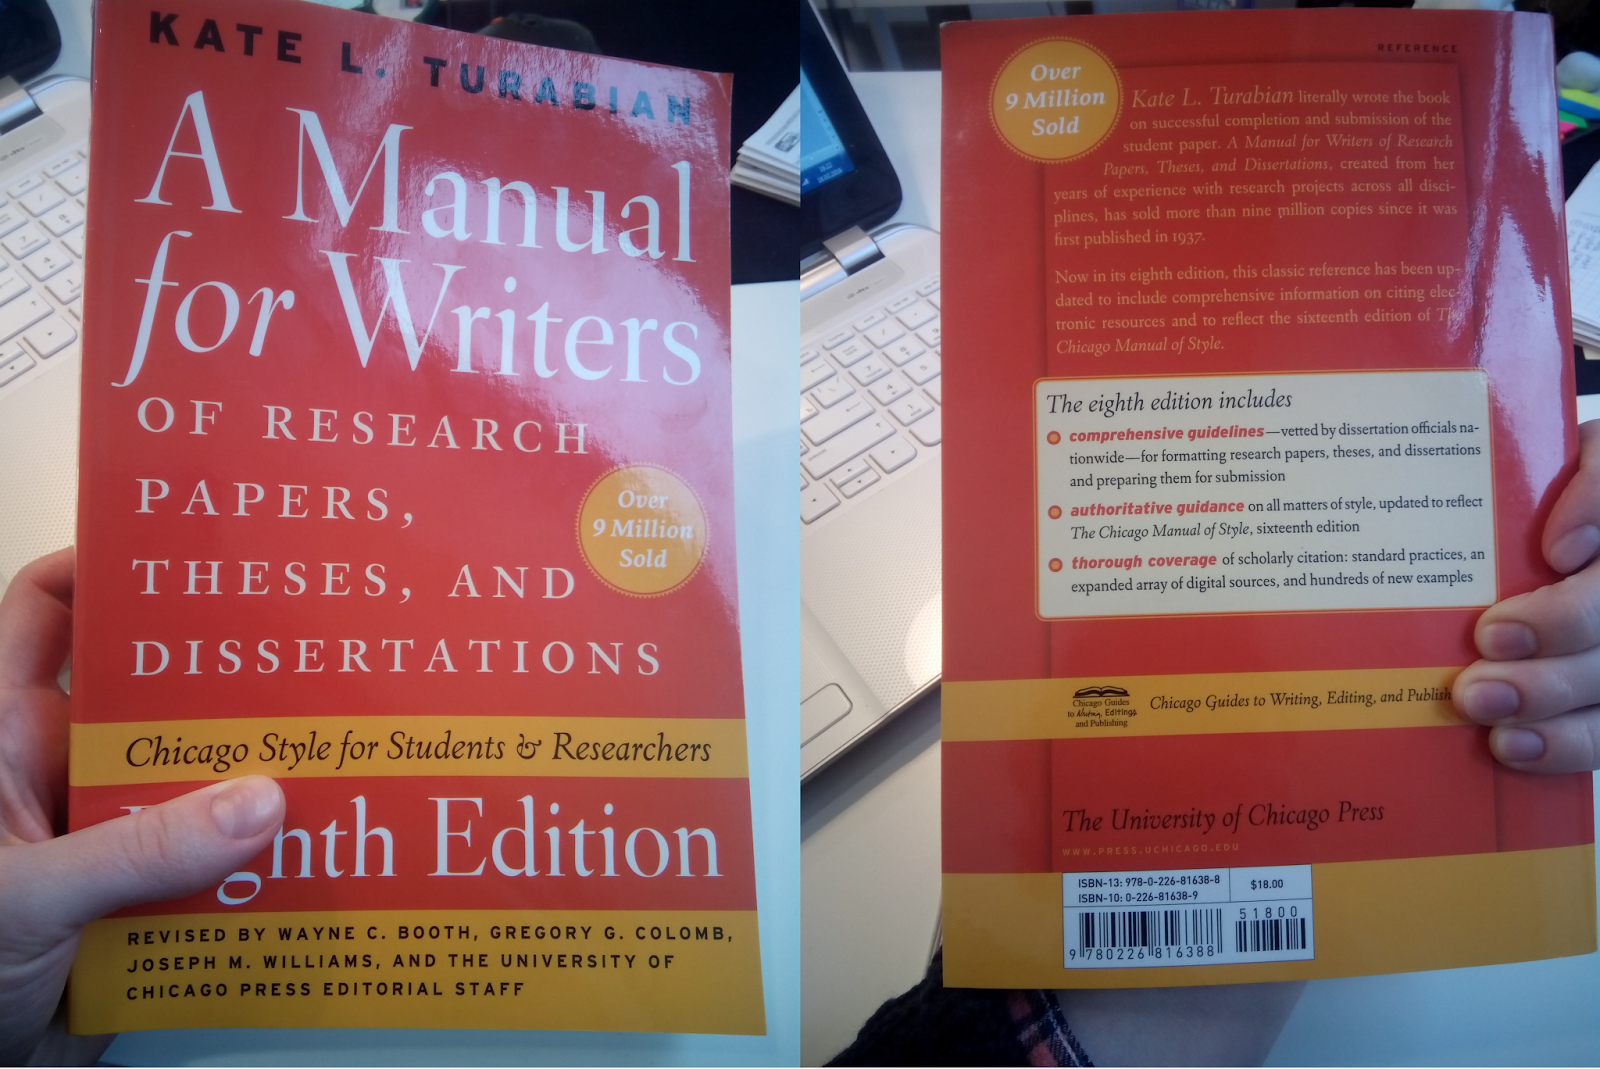 019 Manual For Writers Of Research Papers Theses And Dissertations Paper Magnificent A 8th Ed Pdf Full